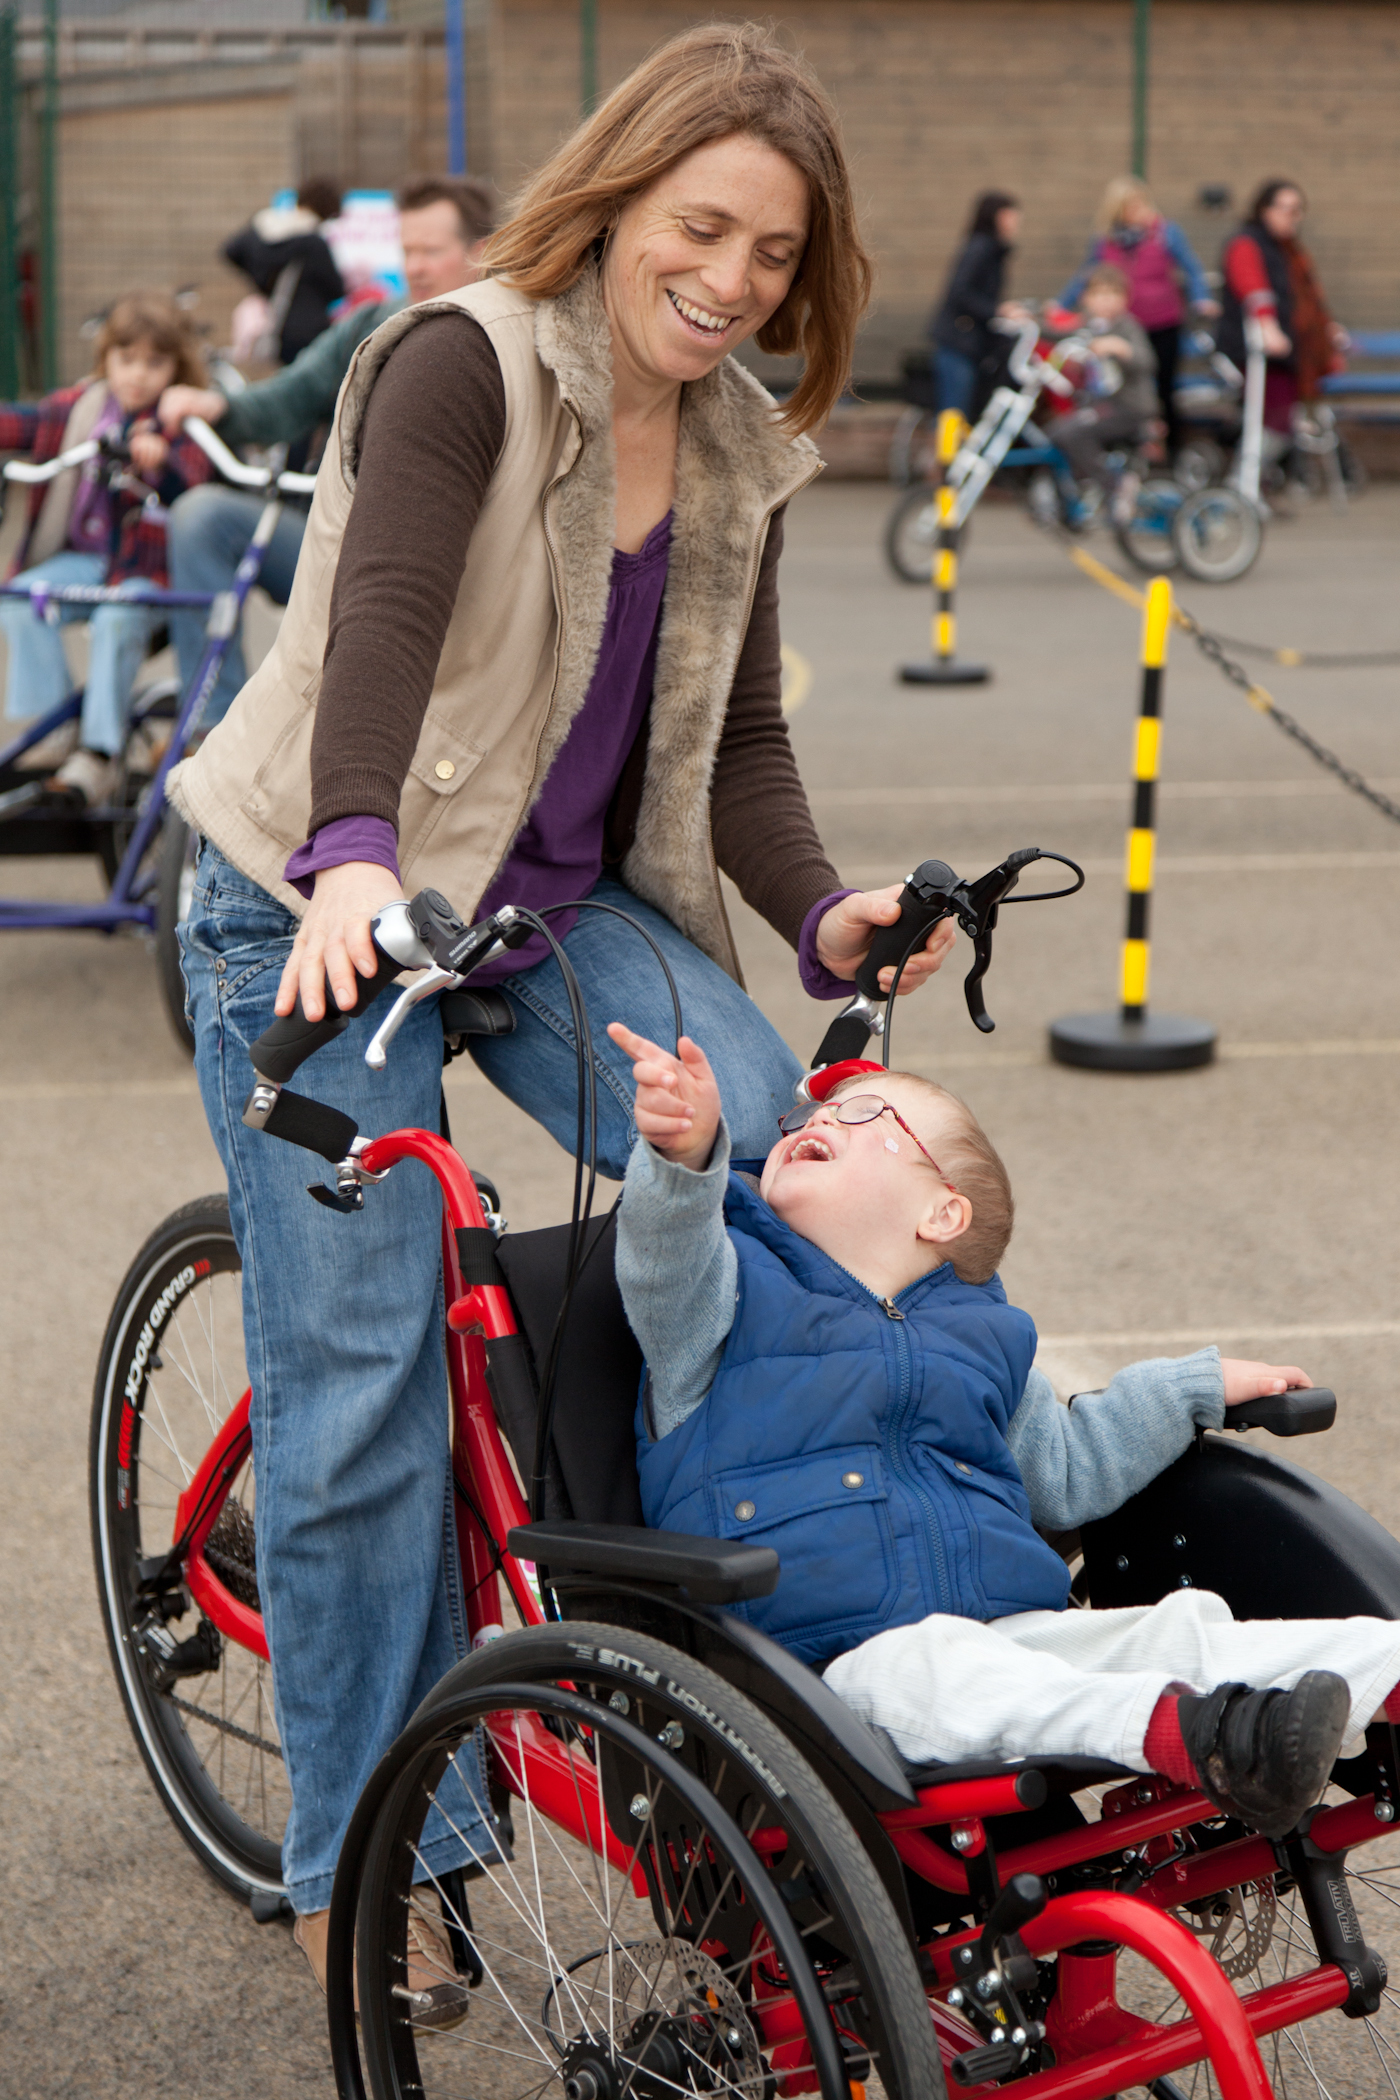 A mother and son try one of the adapted bikes for people with special needs. Photo by Ian Lloyd Photo